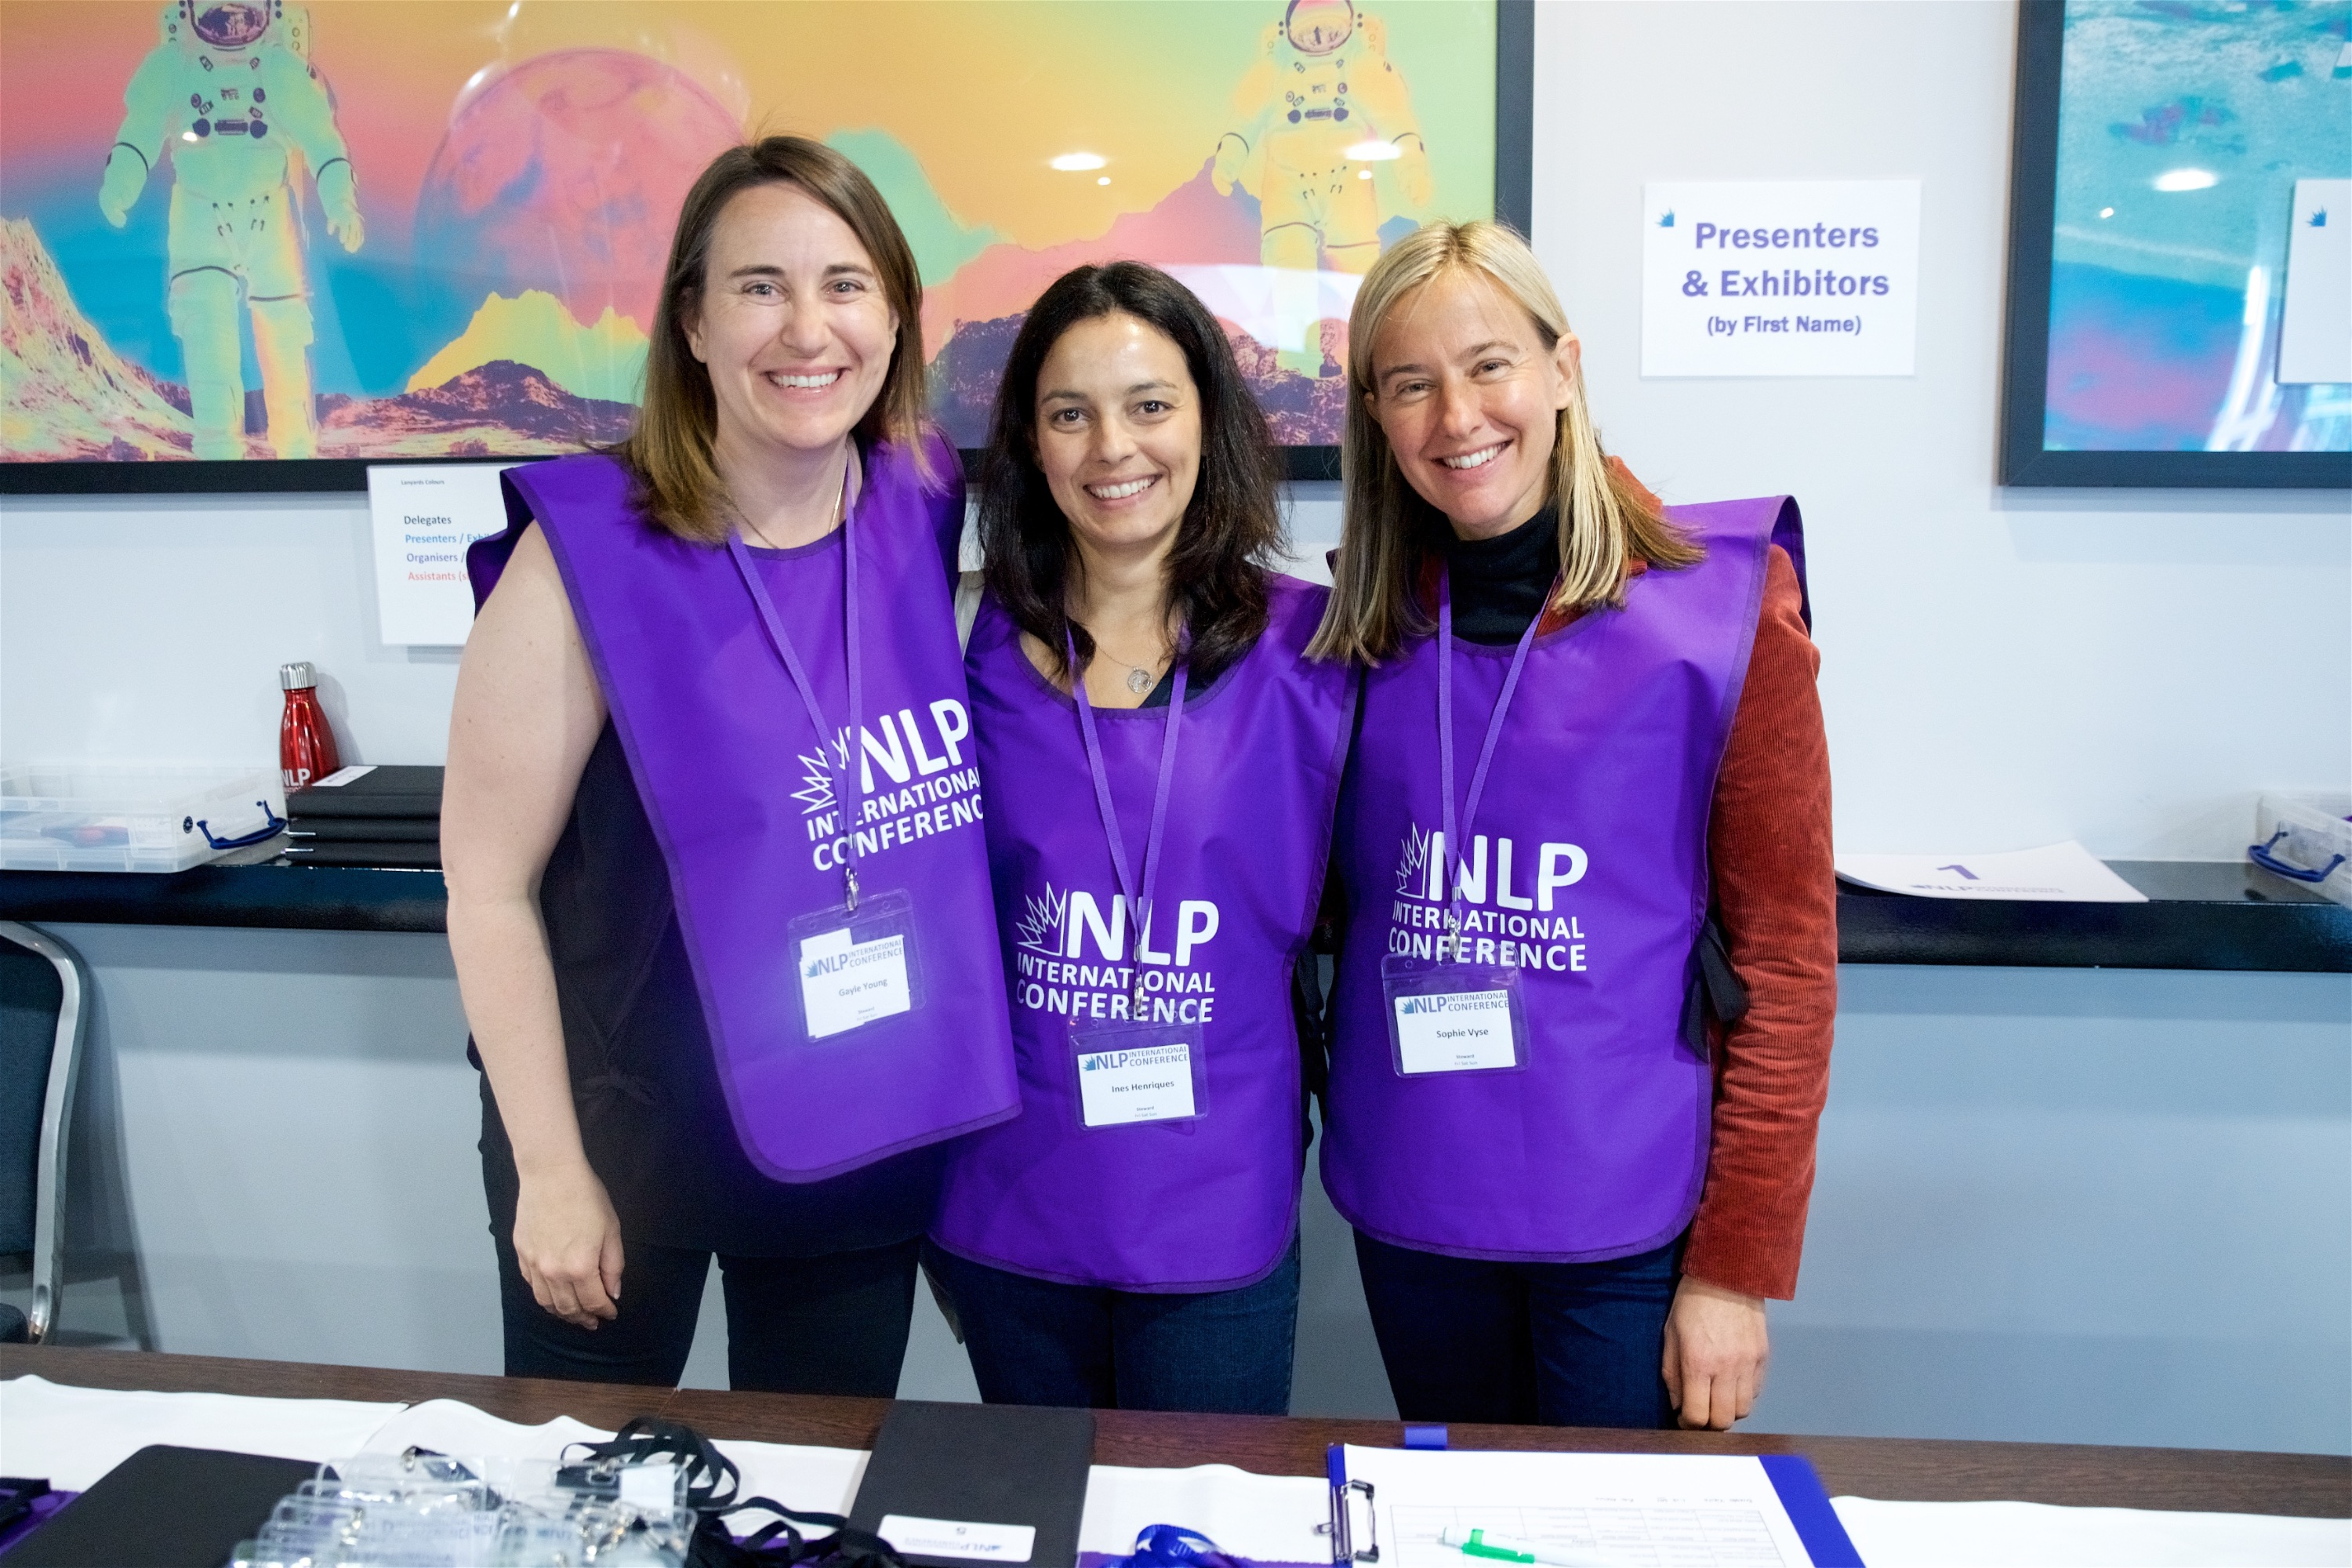 NLP Conference Support Team